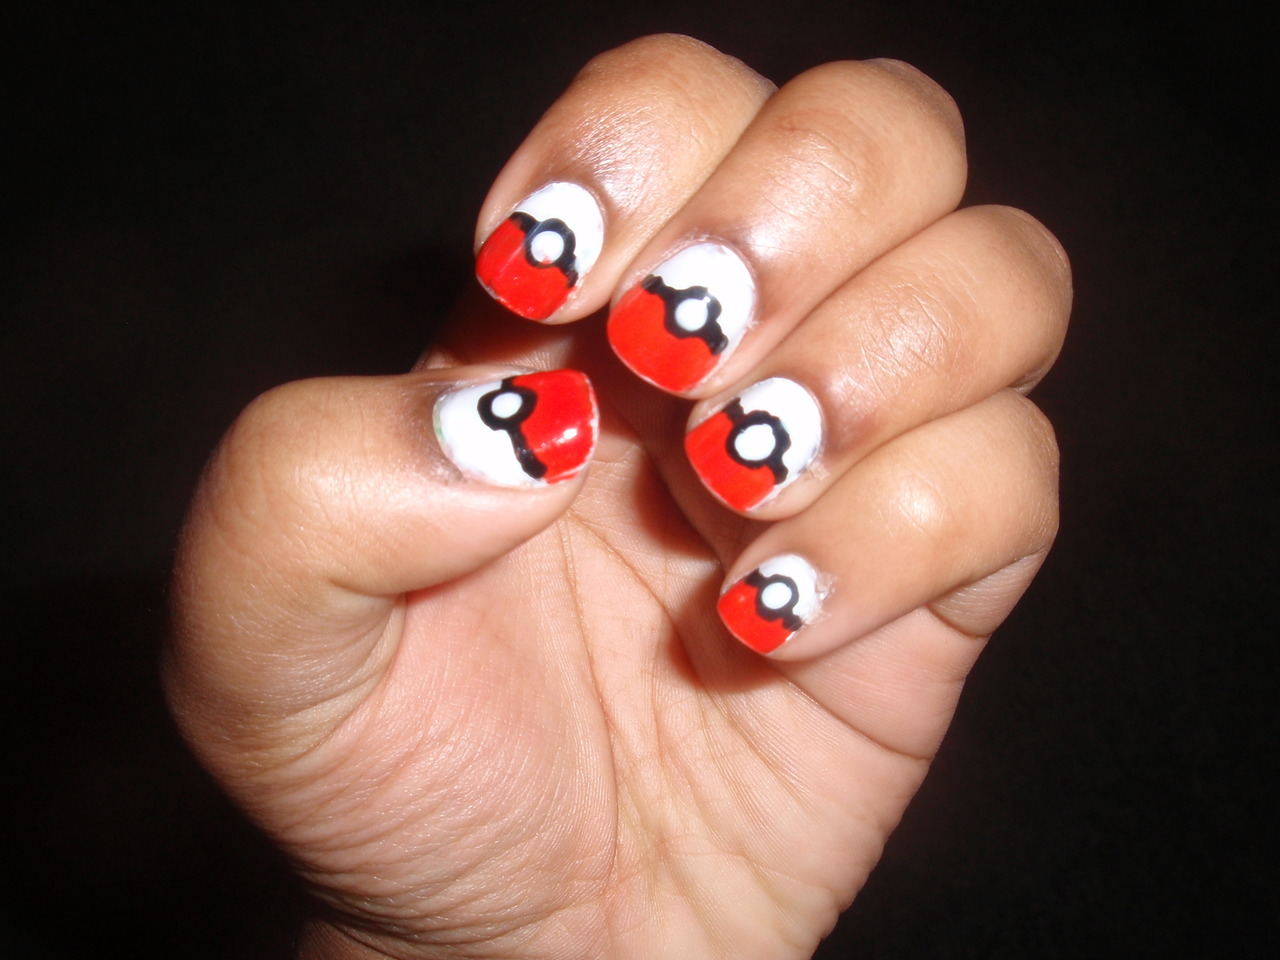 Easy Nail Art Designs Easy Nail Designs Tumblr Woman Fashion   Cute Nail  Art Designs Tumblr